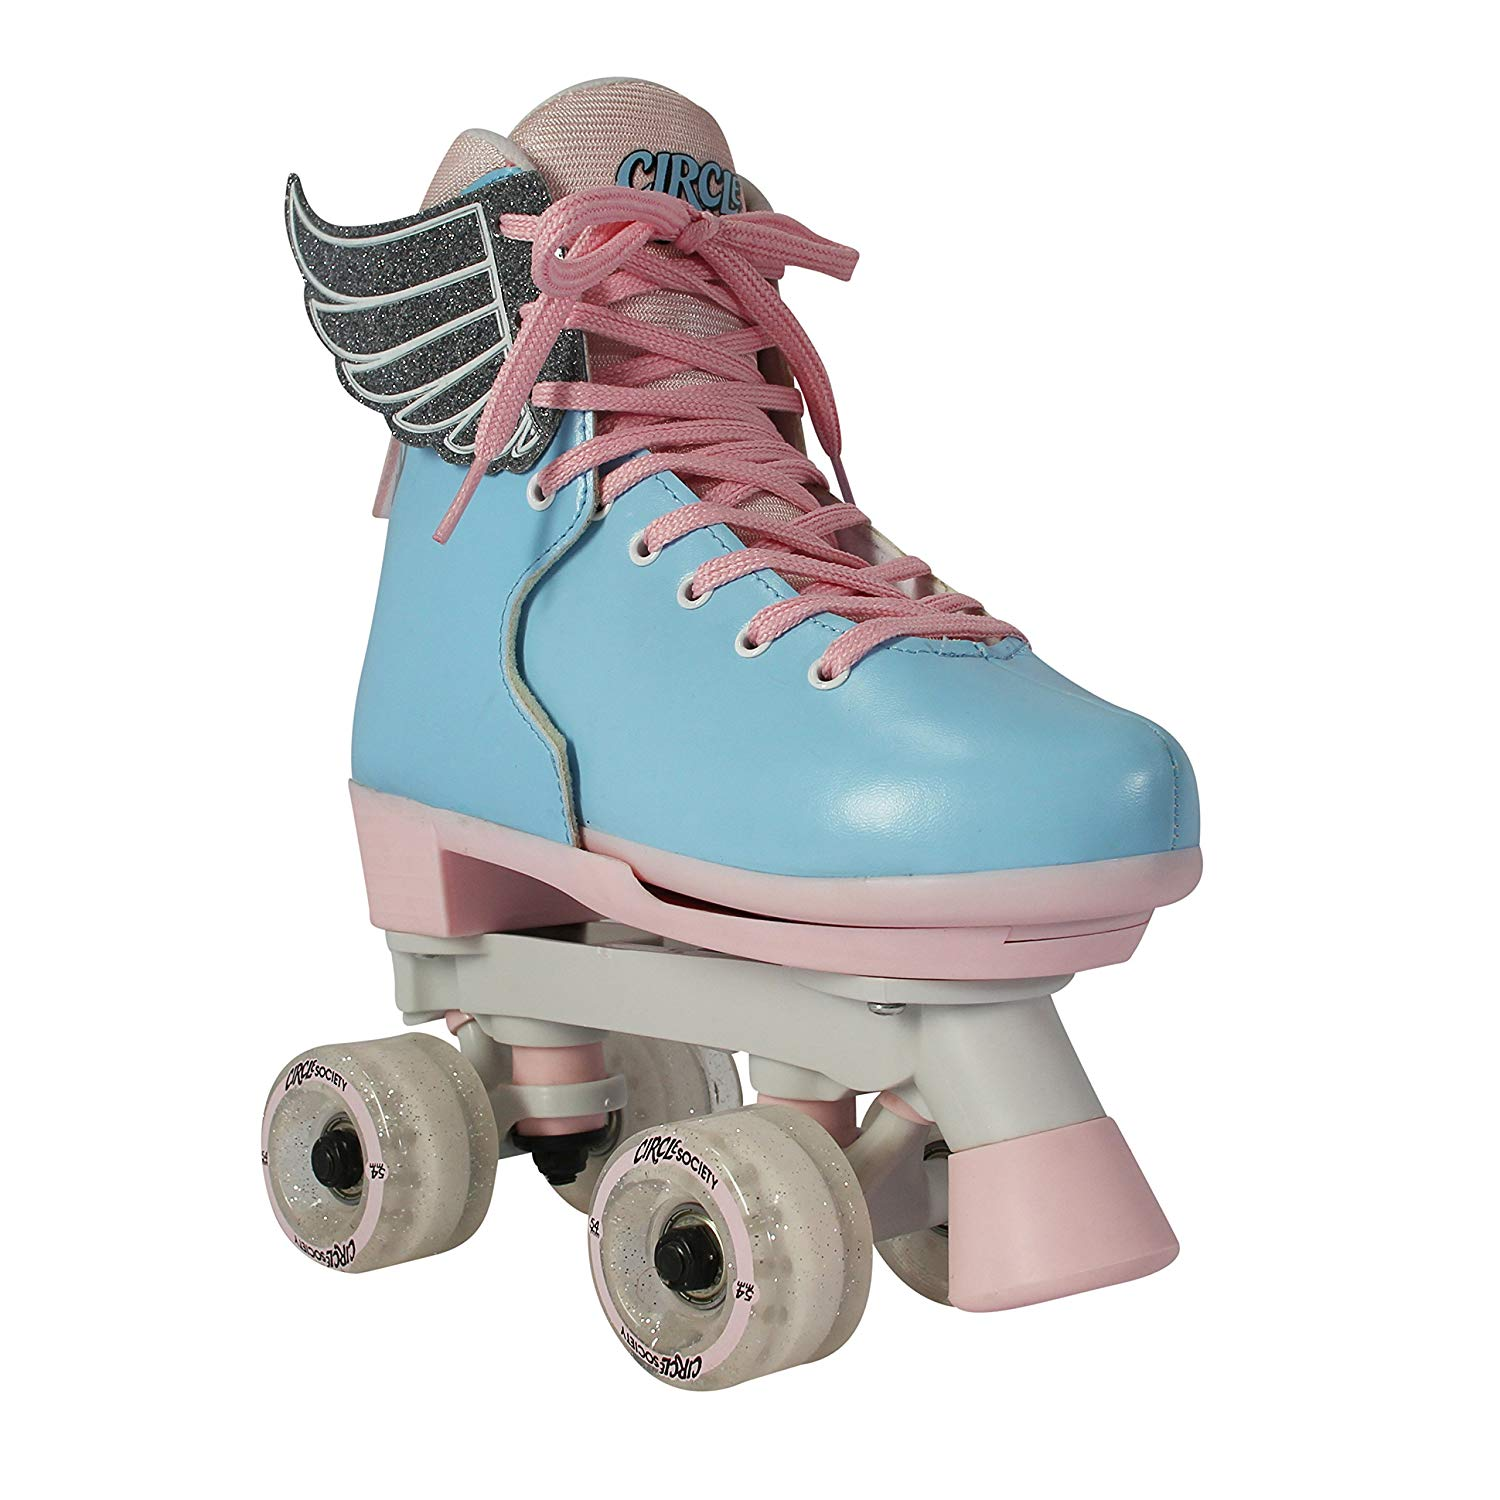 Roller Skates Cotton Candy εμπρός όψη